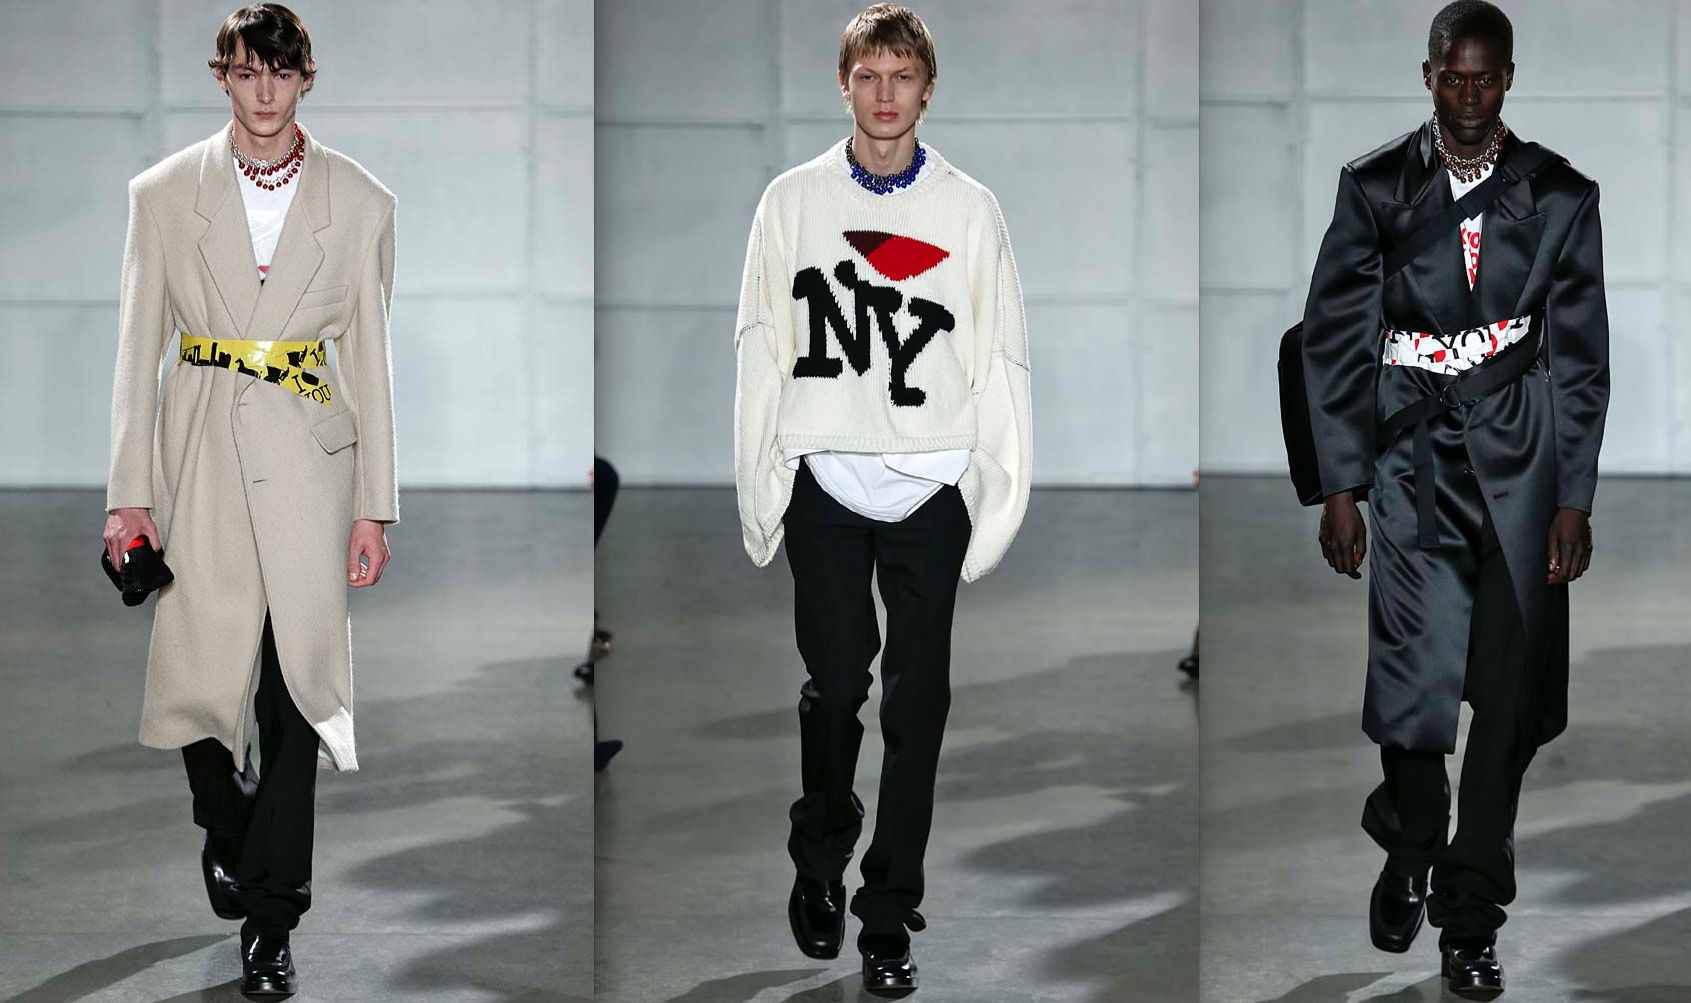 Nyfwm Raf Simons Ode To New York For Fall 2017 Daily Front Row